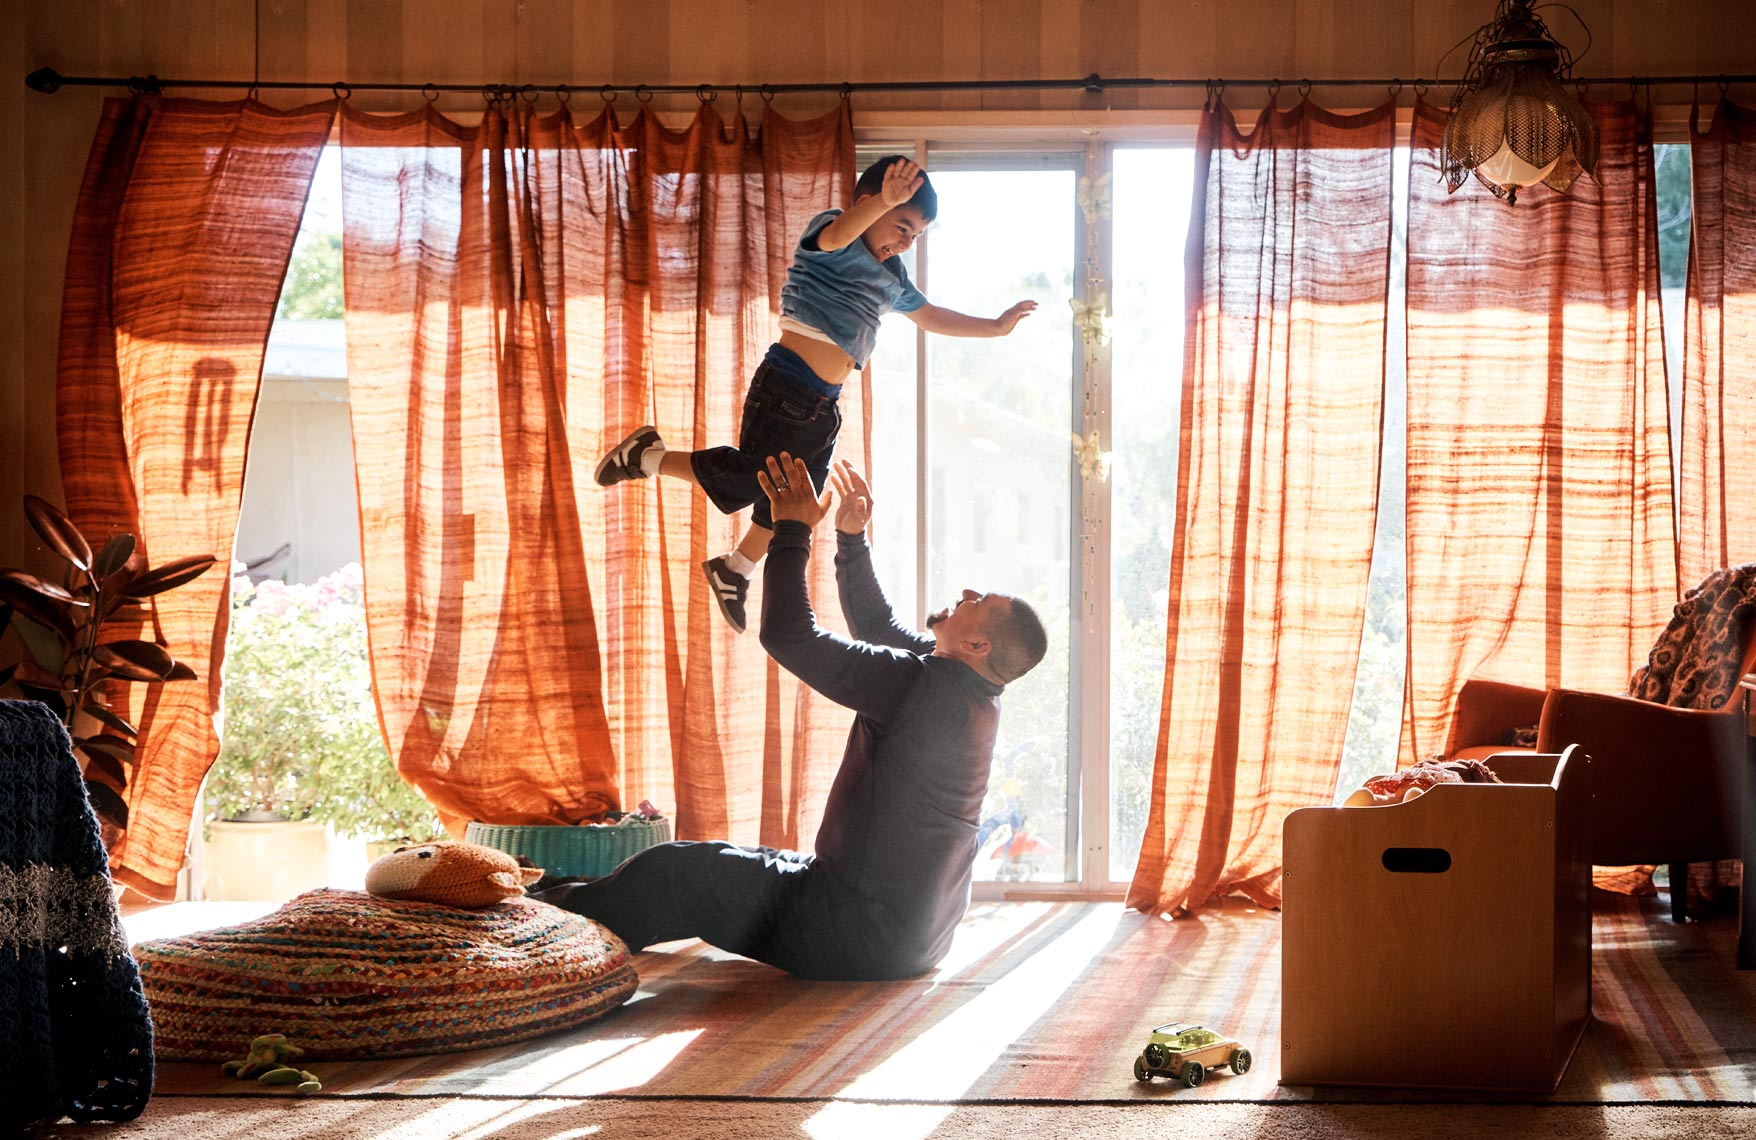 SF_04-wrong-right-father-toddler-flying_1254_z17.jpg